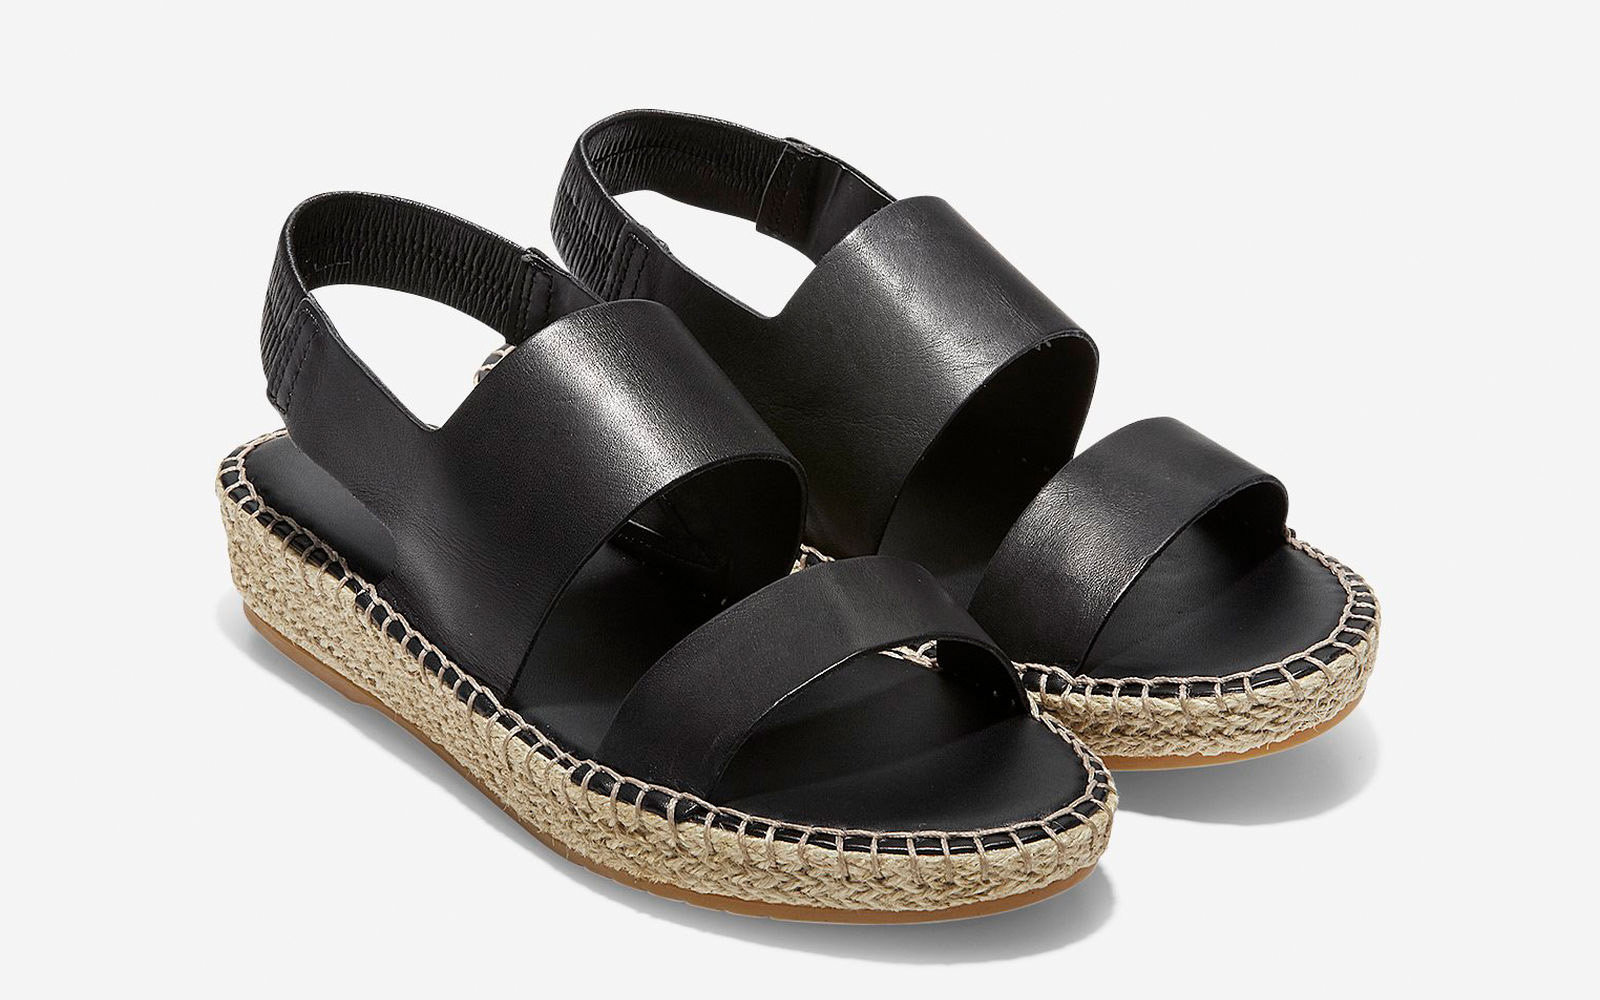 Cloudfeel Espadrille Sandal in Black Leather